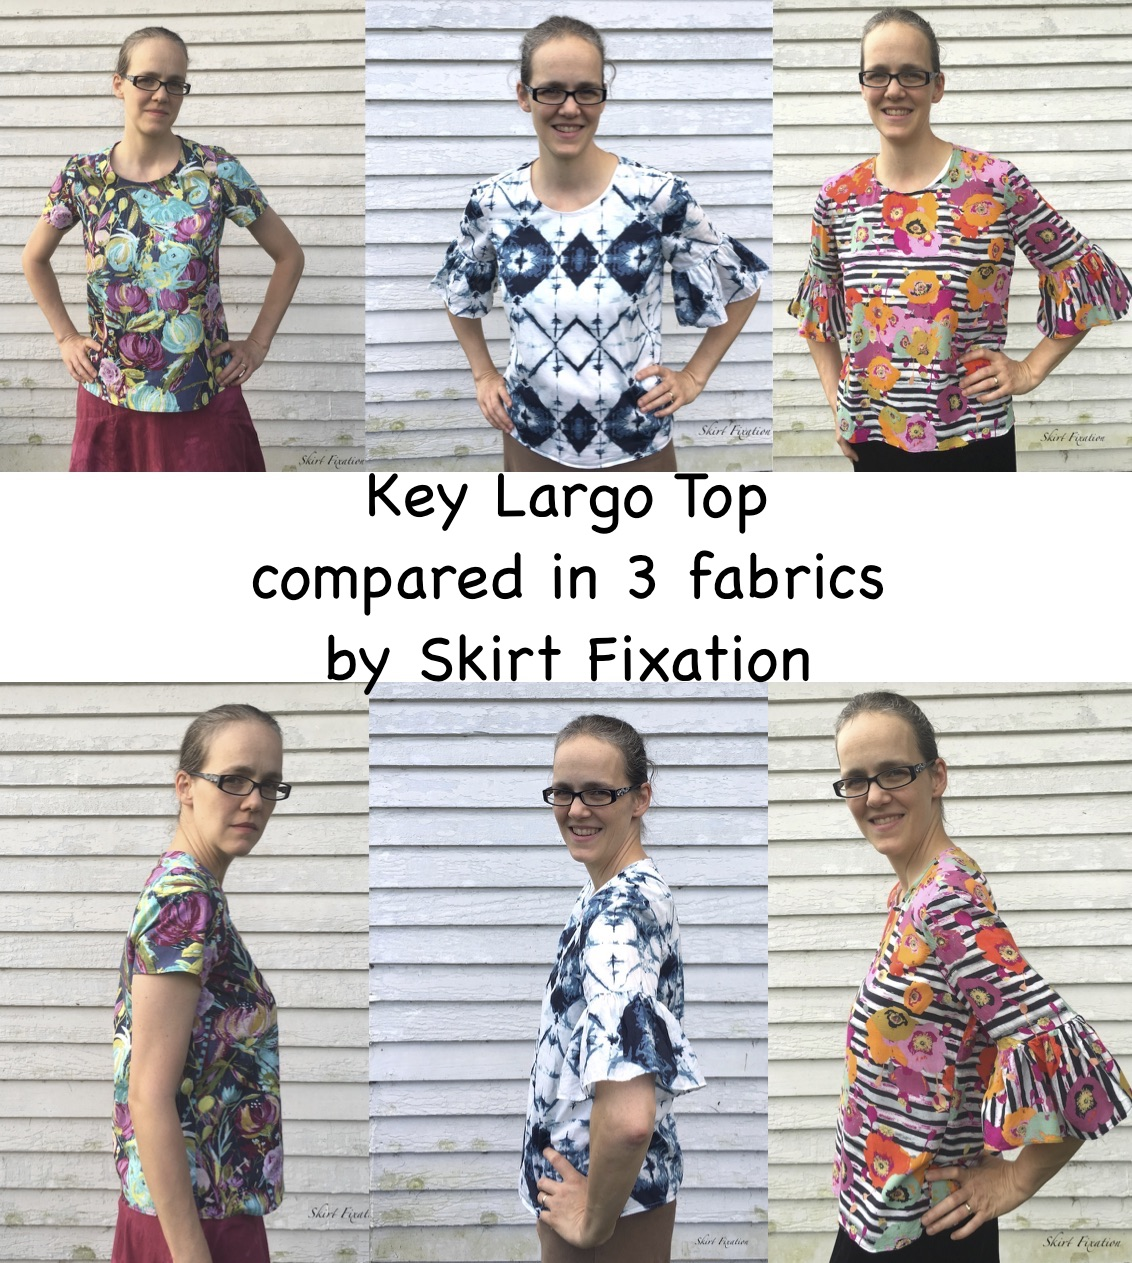 Key Largo Top fabric comparison by Skirt Fixation